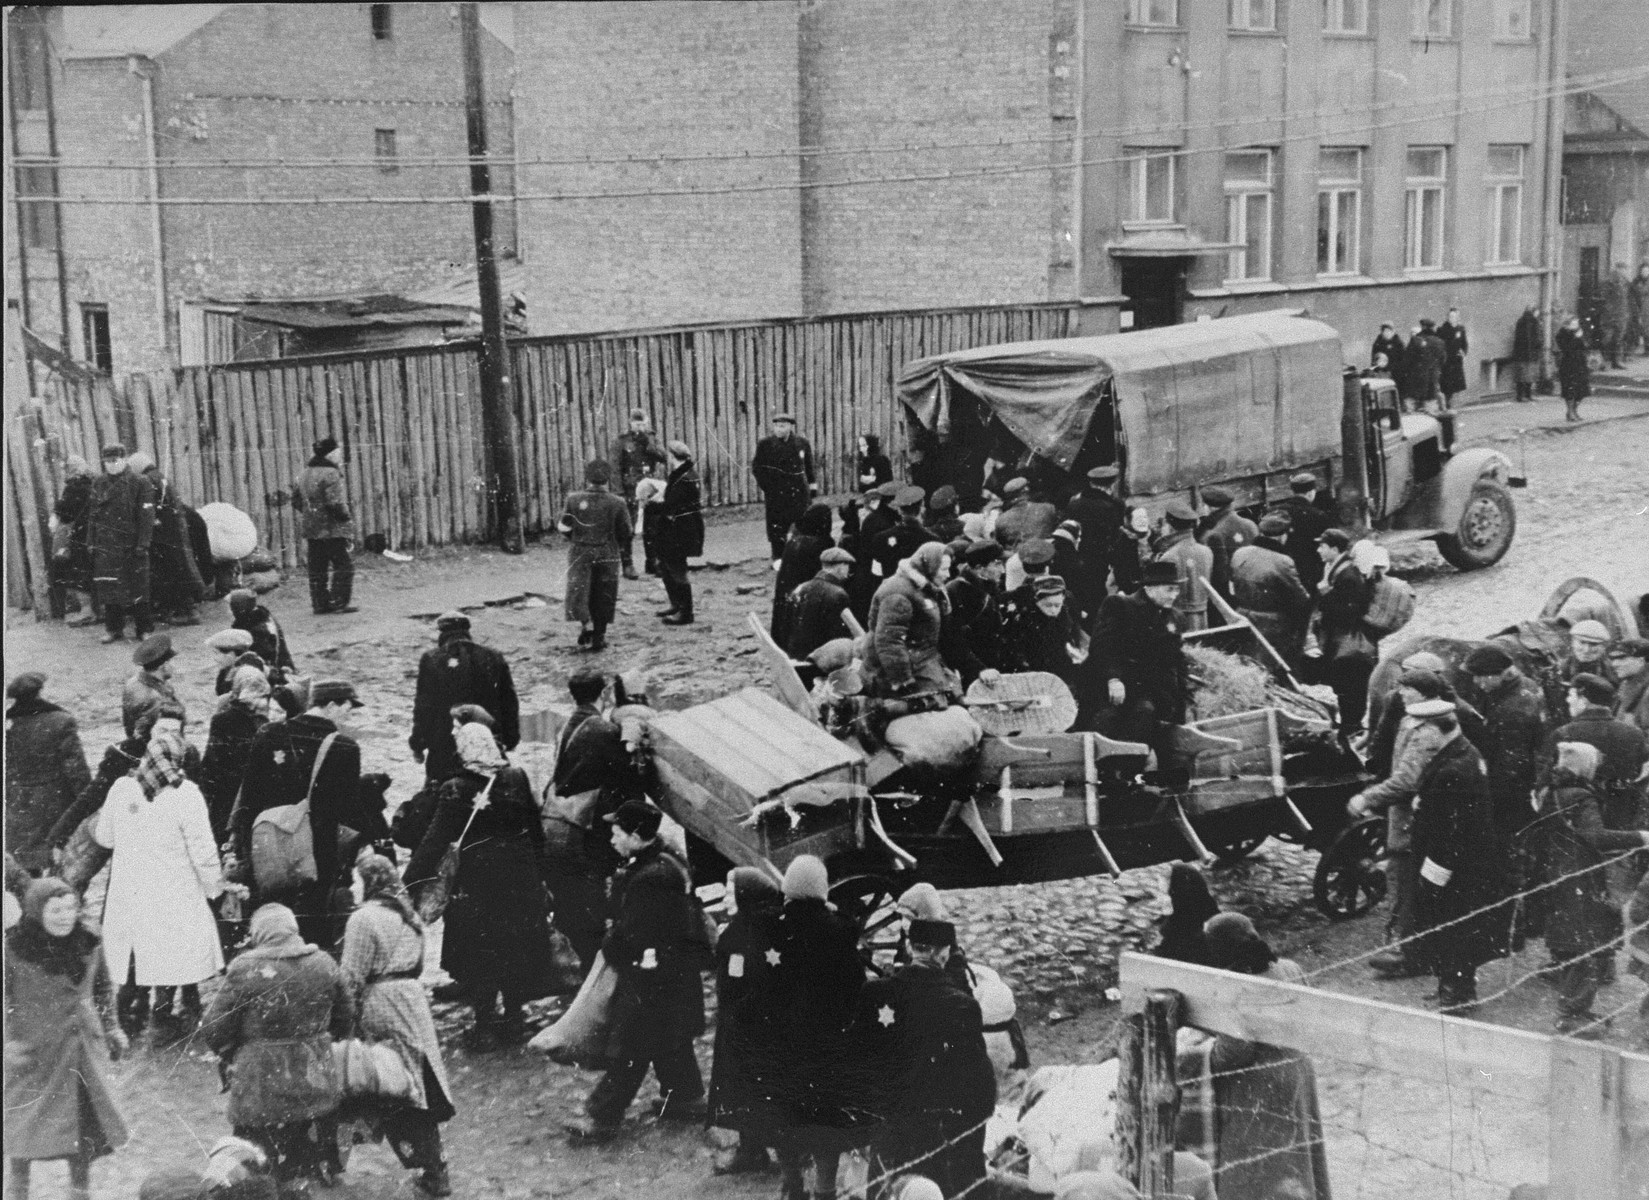 Jews in the Kovno ghetto are boarded onto trucks during a deportation action to Estonia.